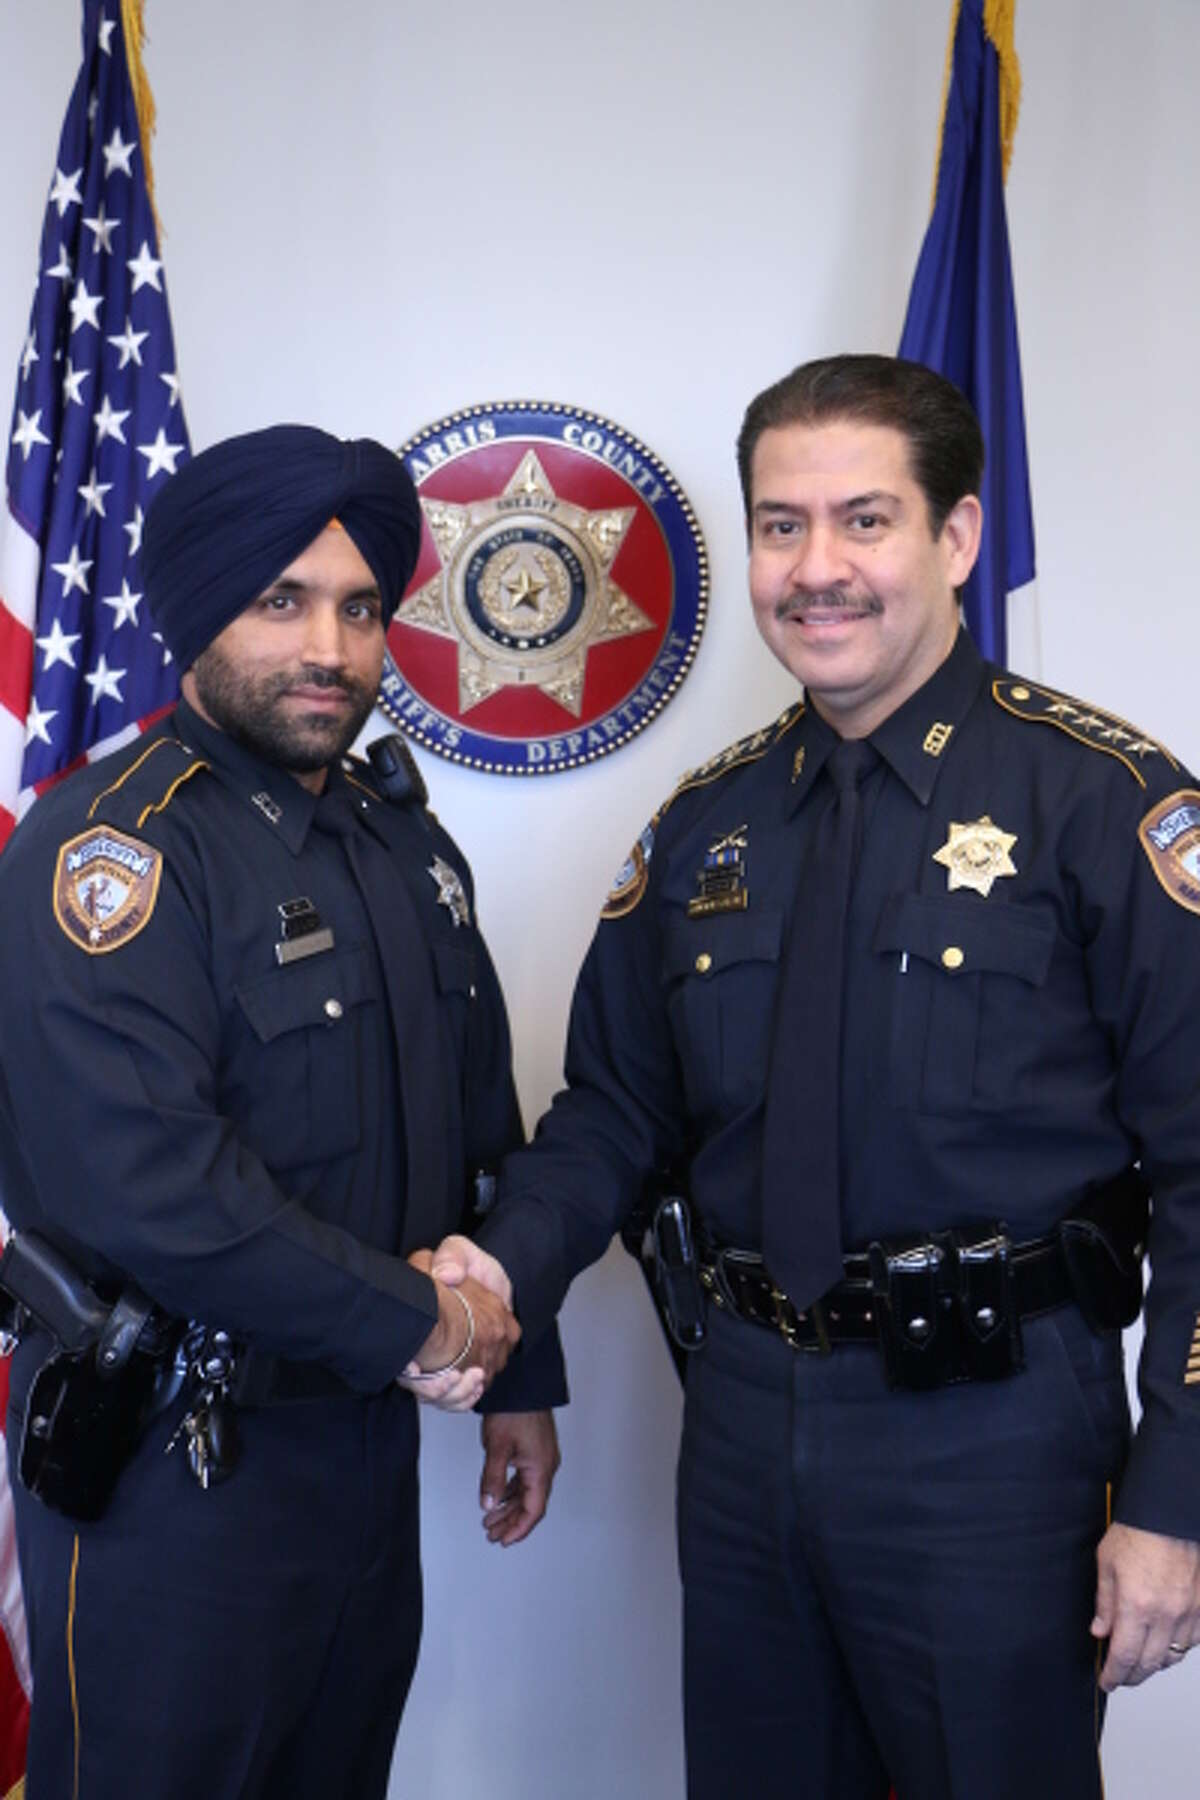 """For the first time ever, the Harris County Sheriff's Office will allow a Sikh deputy to wear his religion's customary dastaar (turban) and beard while patrolling the streets of Harris County. The agency's first Sikh deputy, Sandeep Dhaliwal, had not been allowed to do so until now. He's been with the sheriff's office for six years. A religious accommodation policy implemented by Sheriff Adrian Garcia has made it possible. """"By making these religious accommodations we are joining the U.S. military and other law enforcement agencies across the country with observant Sikh Americans among their ranks. Harris County is no different. We are one of the most culturally rich and diverse communities in America,"""" Sheriff Garcia said in a statement Wednesday. (Photo: Harris County Sheriff's Office)"""